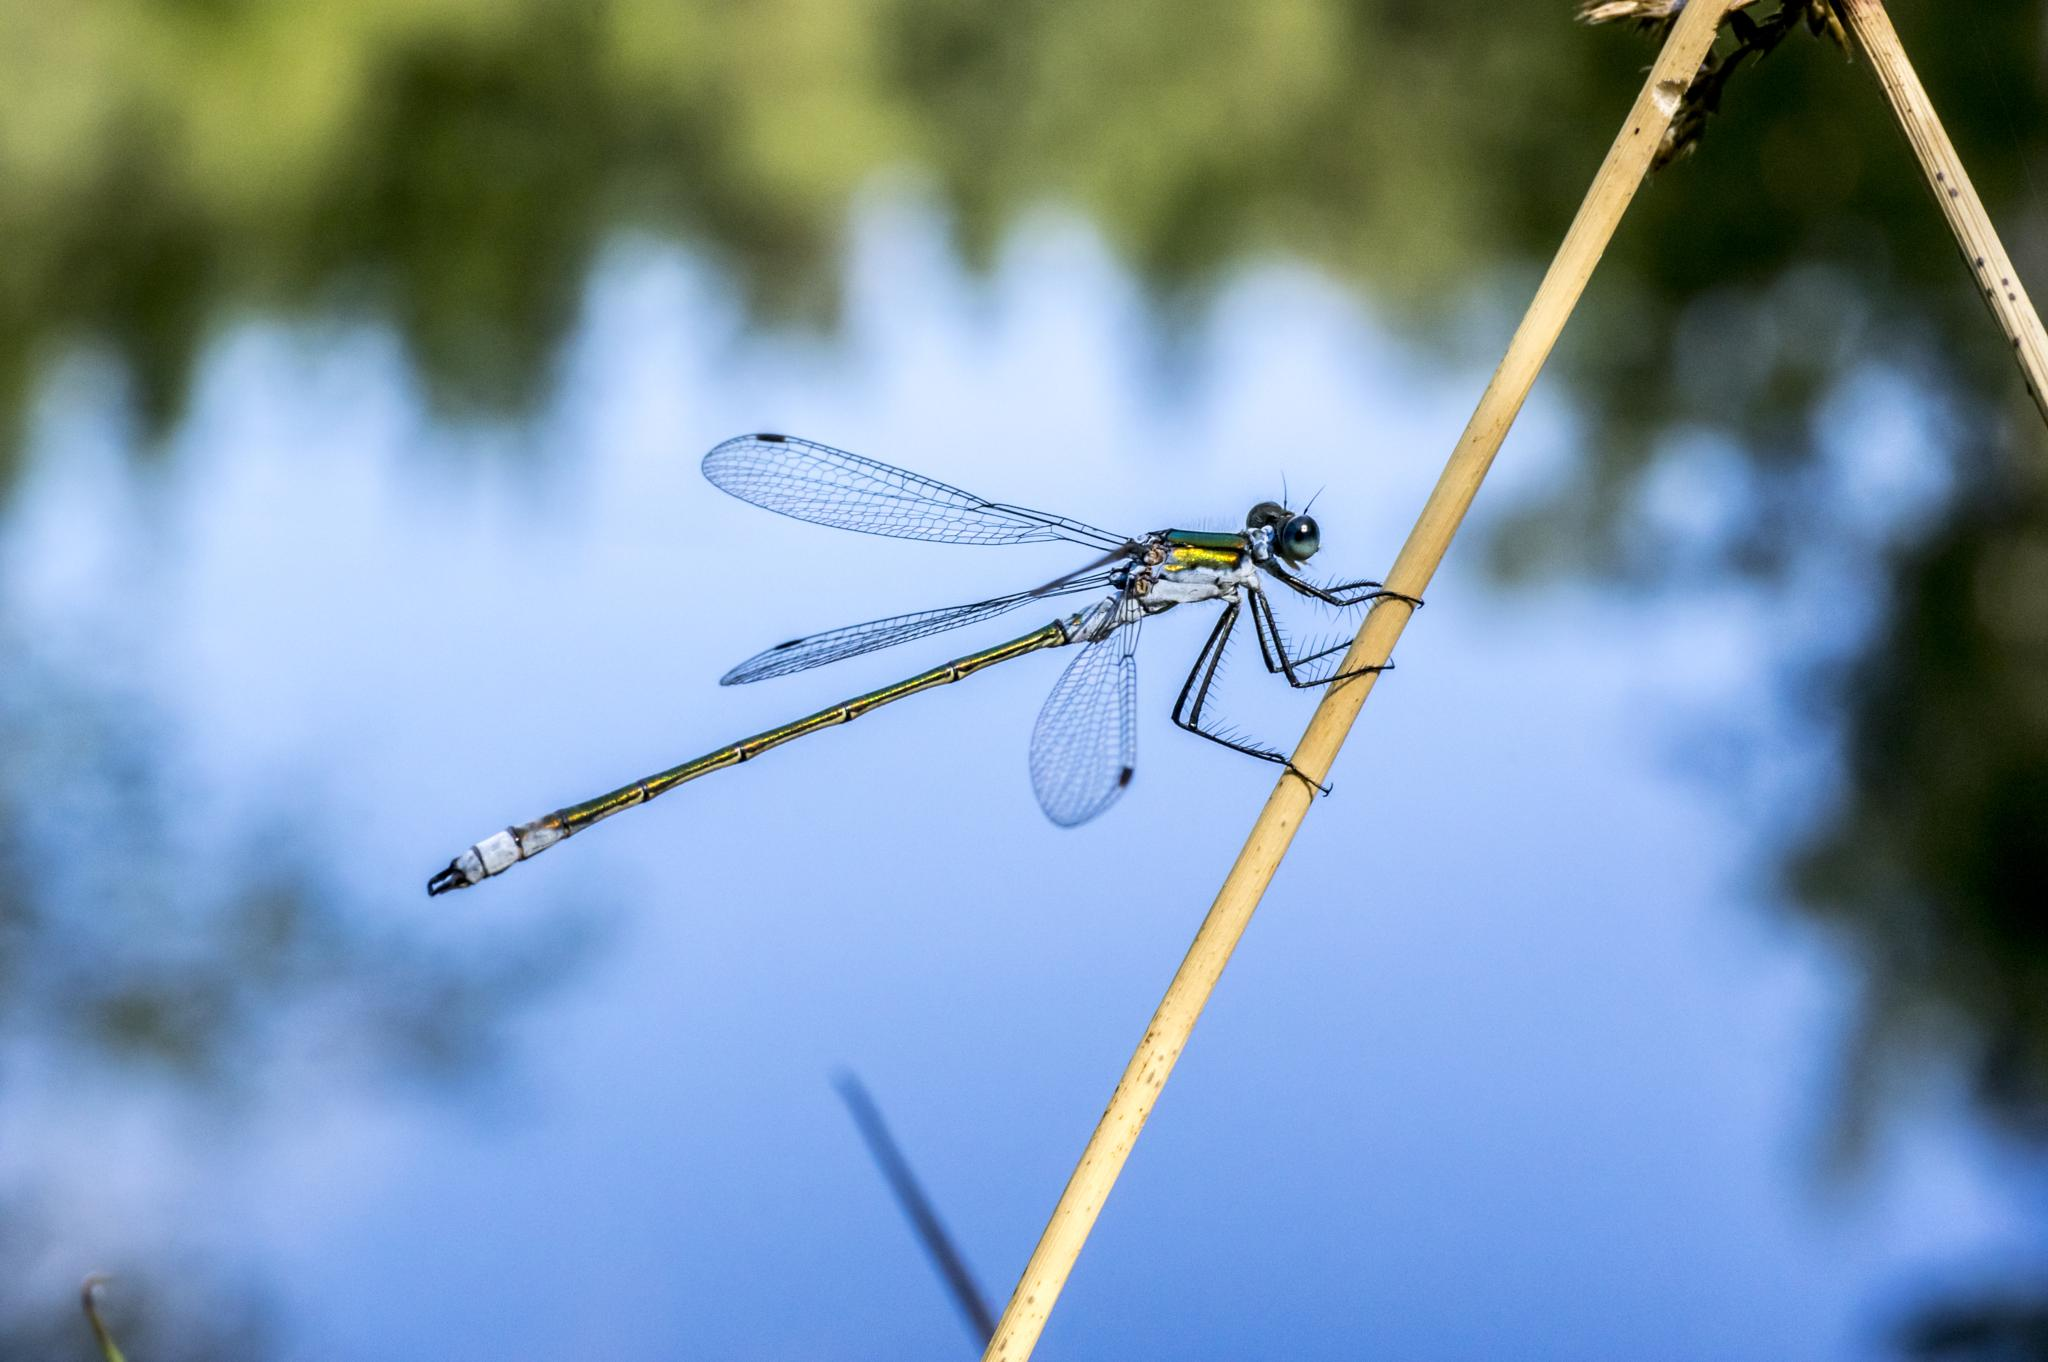 dragonfly by the pond by gorber